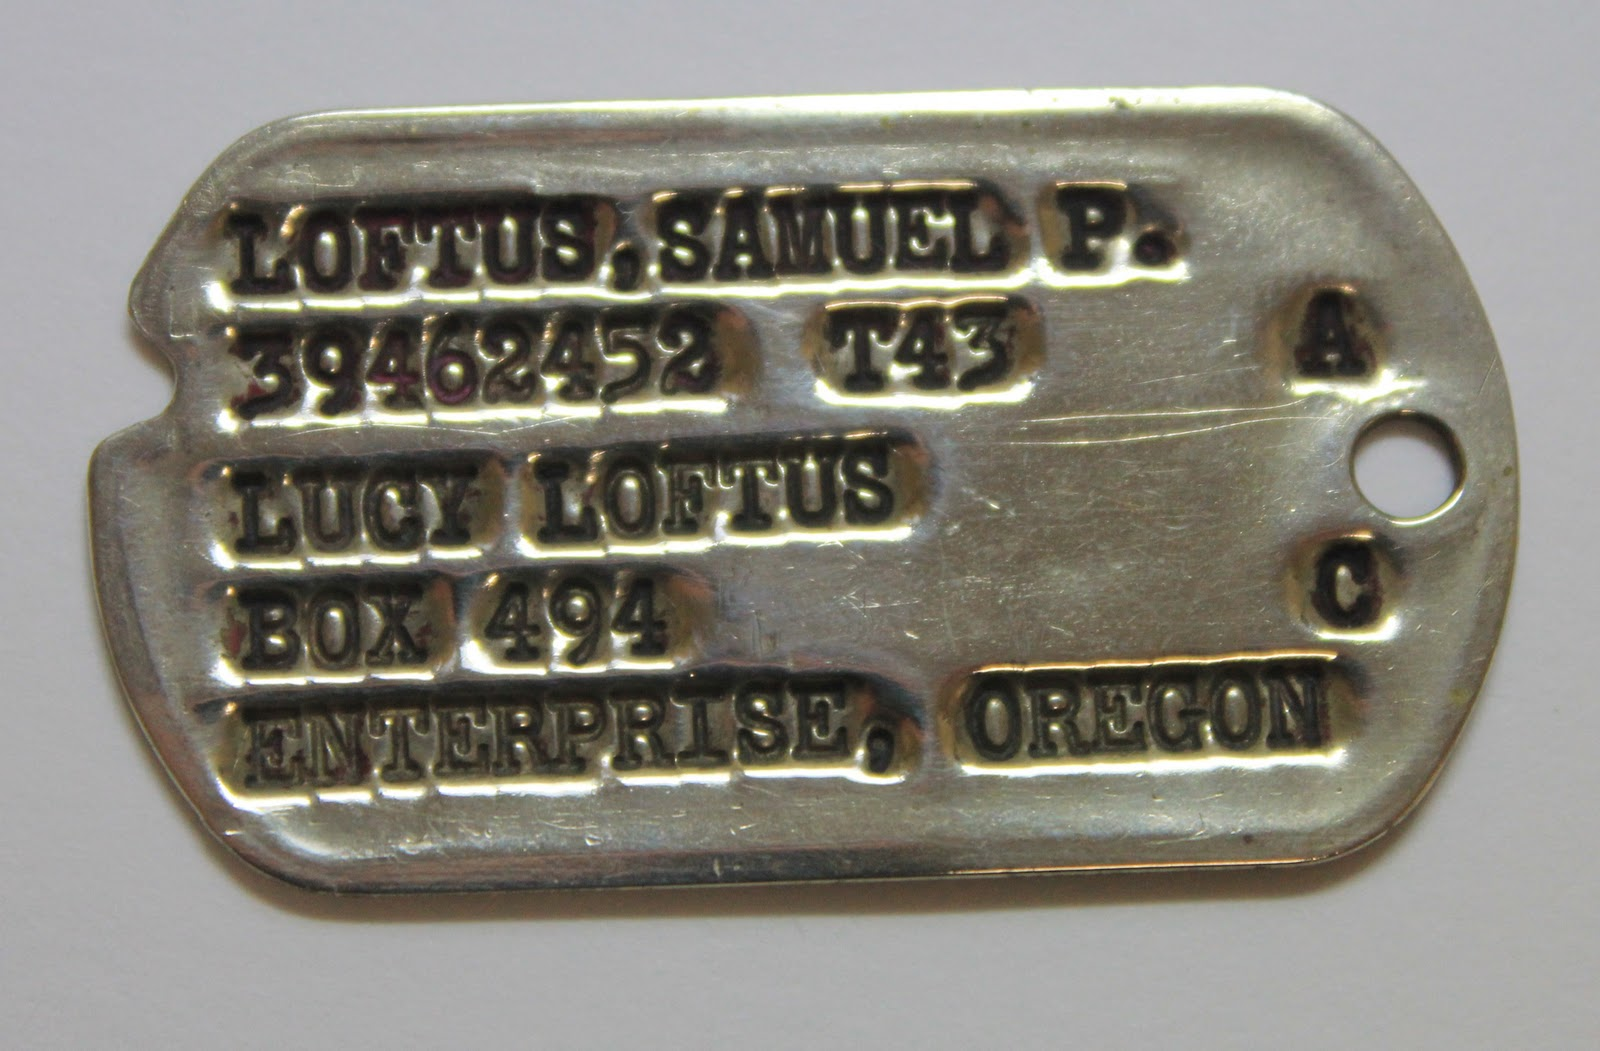 Back Home The World War 2 American Dog Tag Mystery Solved